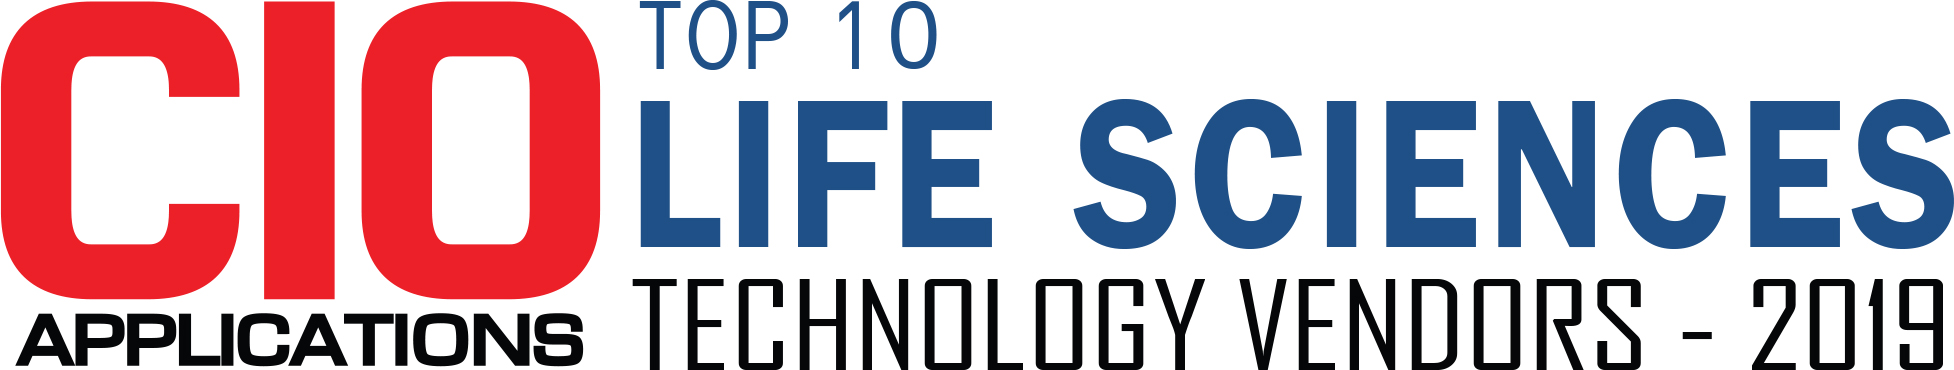 Top 10 Life Sciences Technology Companies - 2019